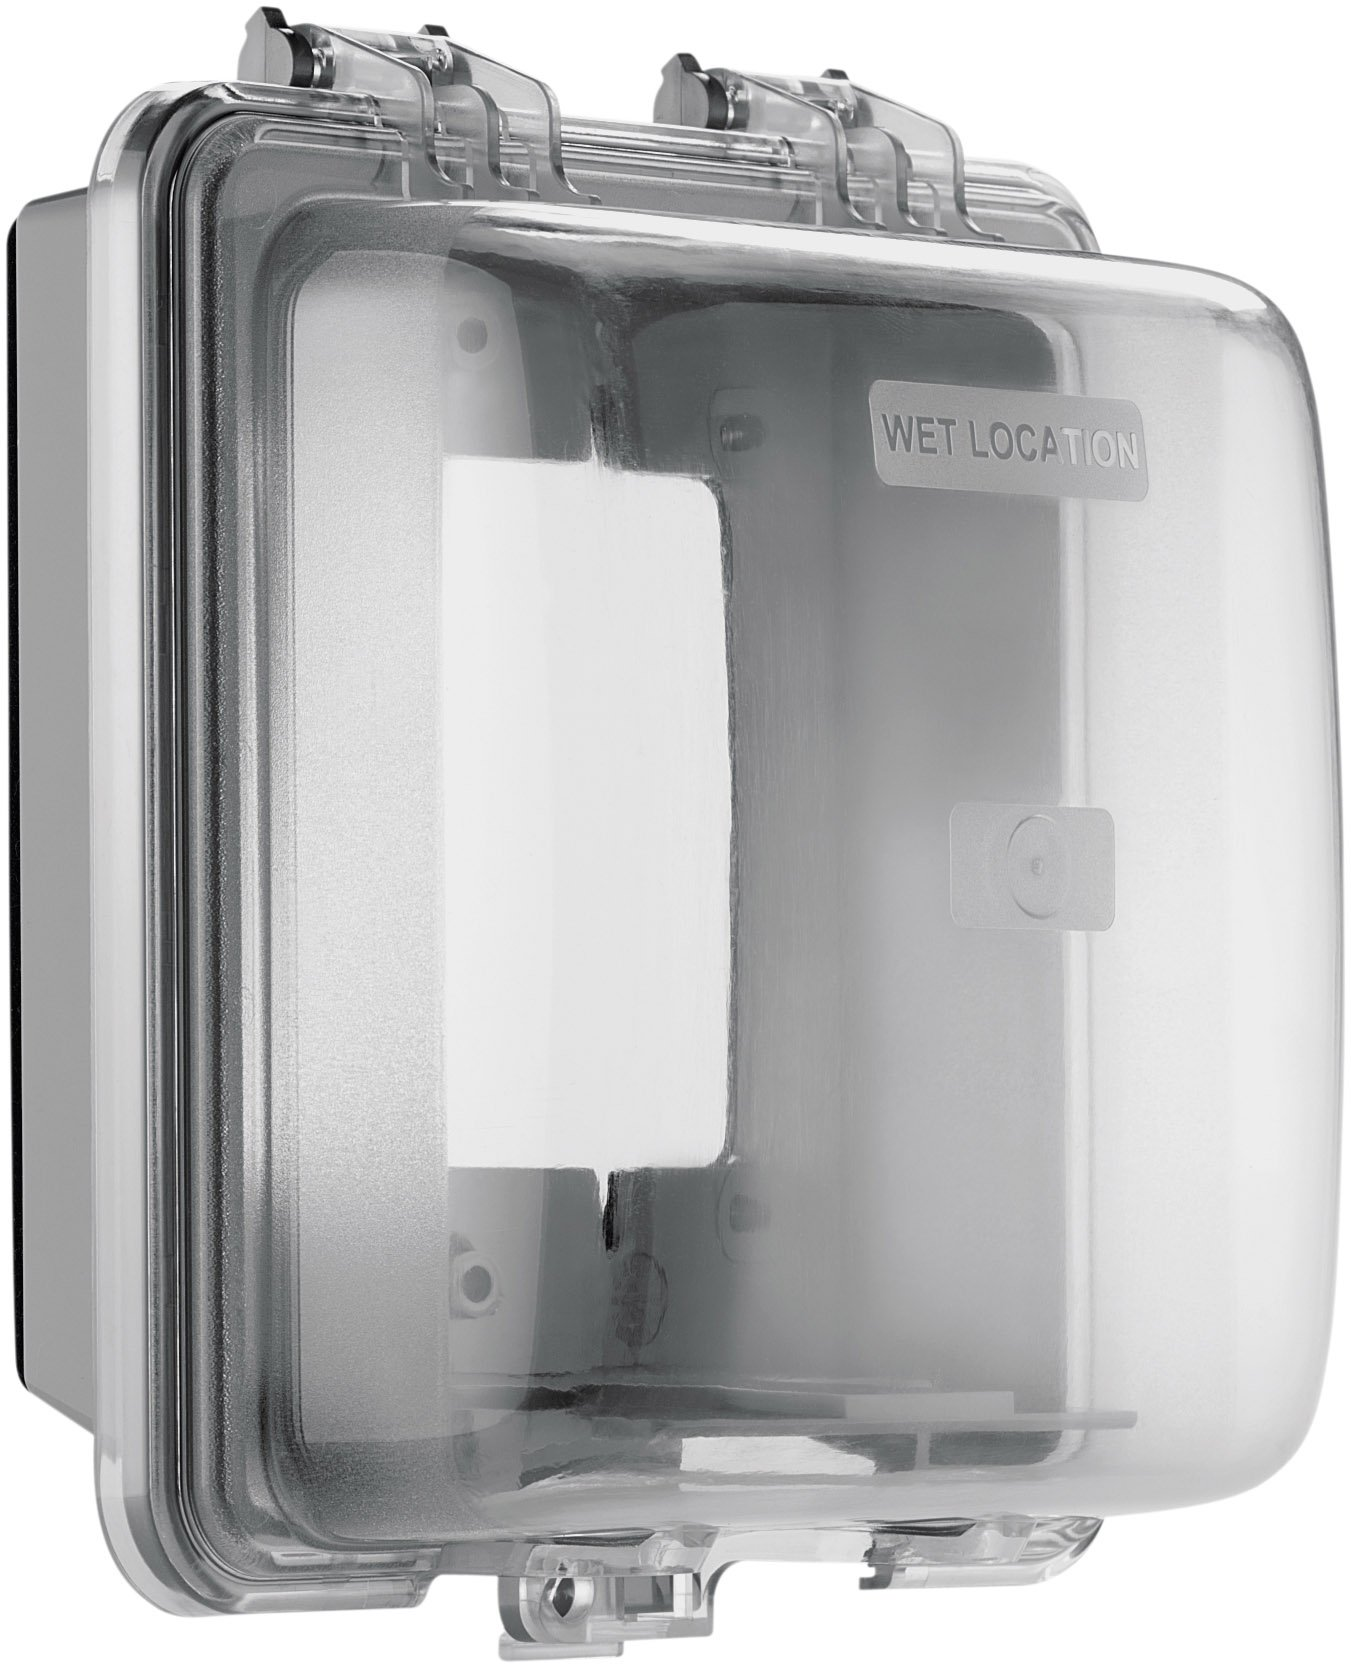 Eaton WIU-2 Weather Box Horizontal/ Vertical Mount While-In-Use Weather Protective Cover, Gray